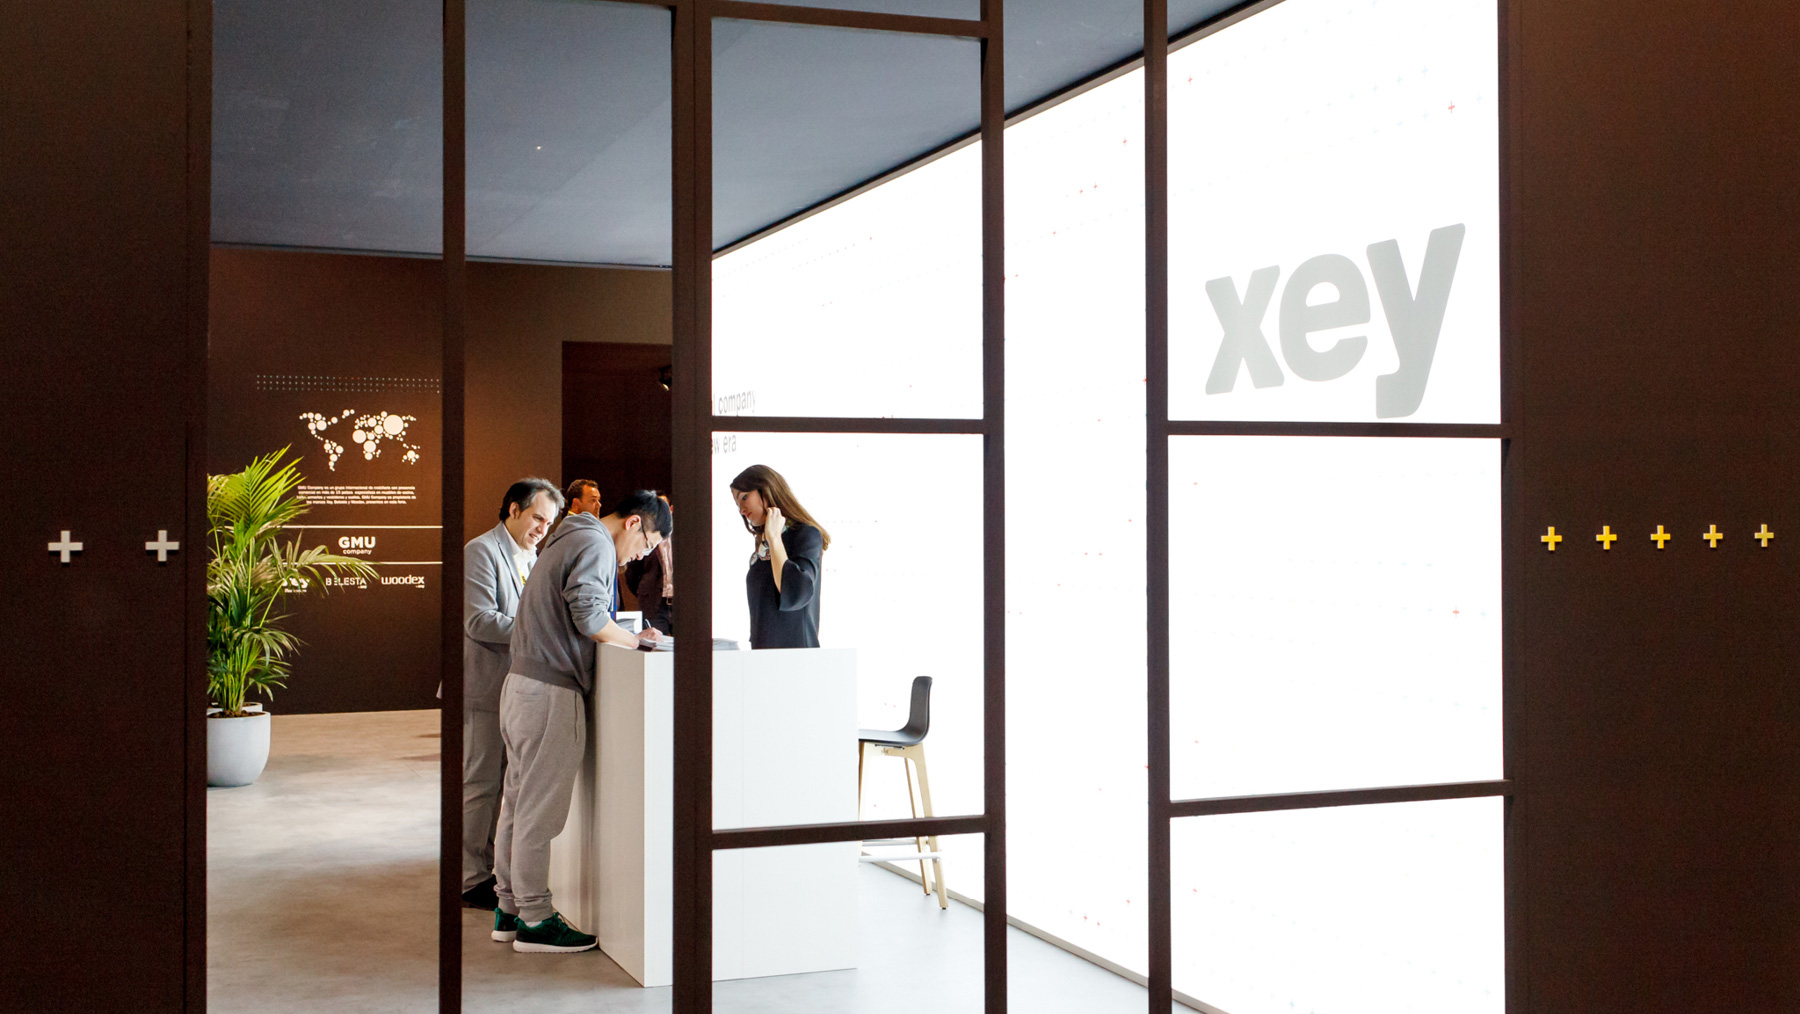 XEY-STAND3